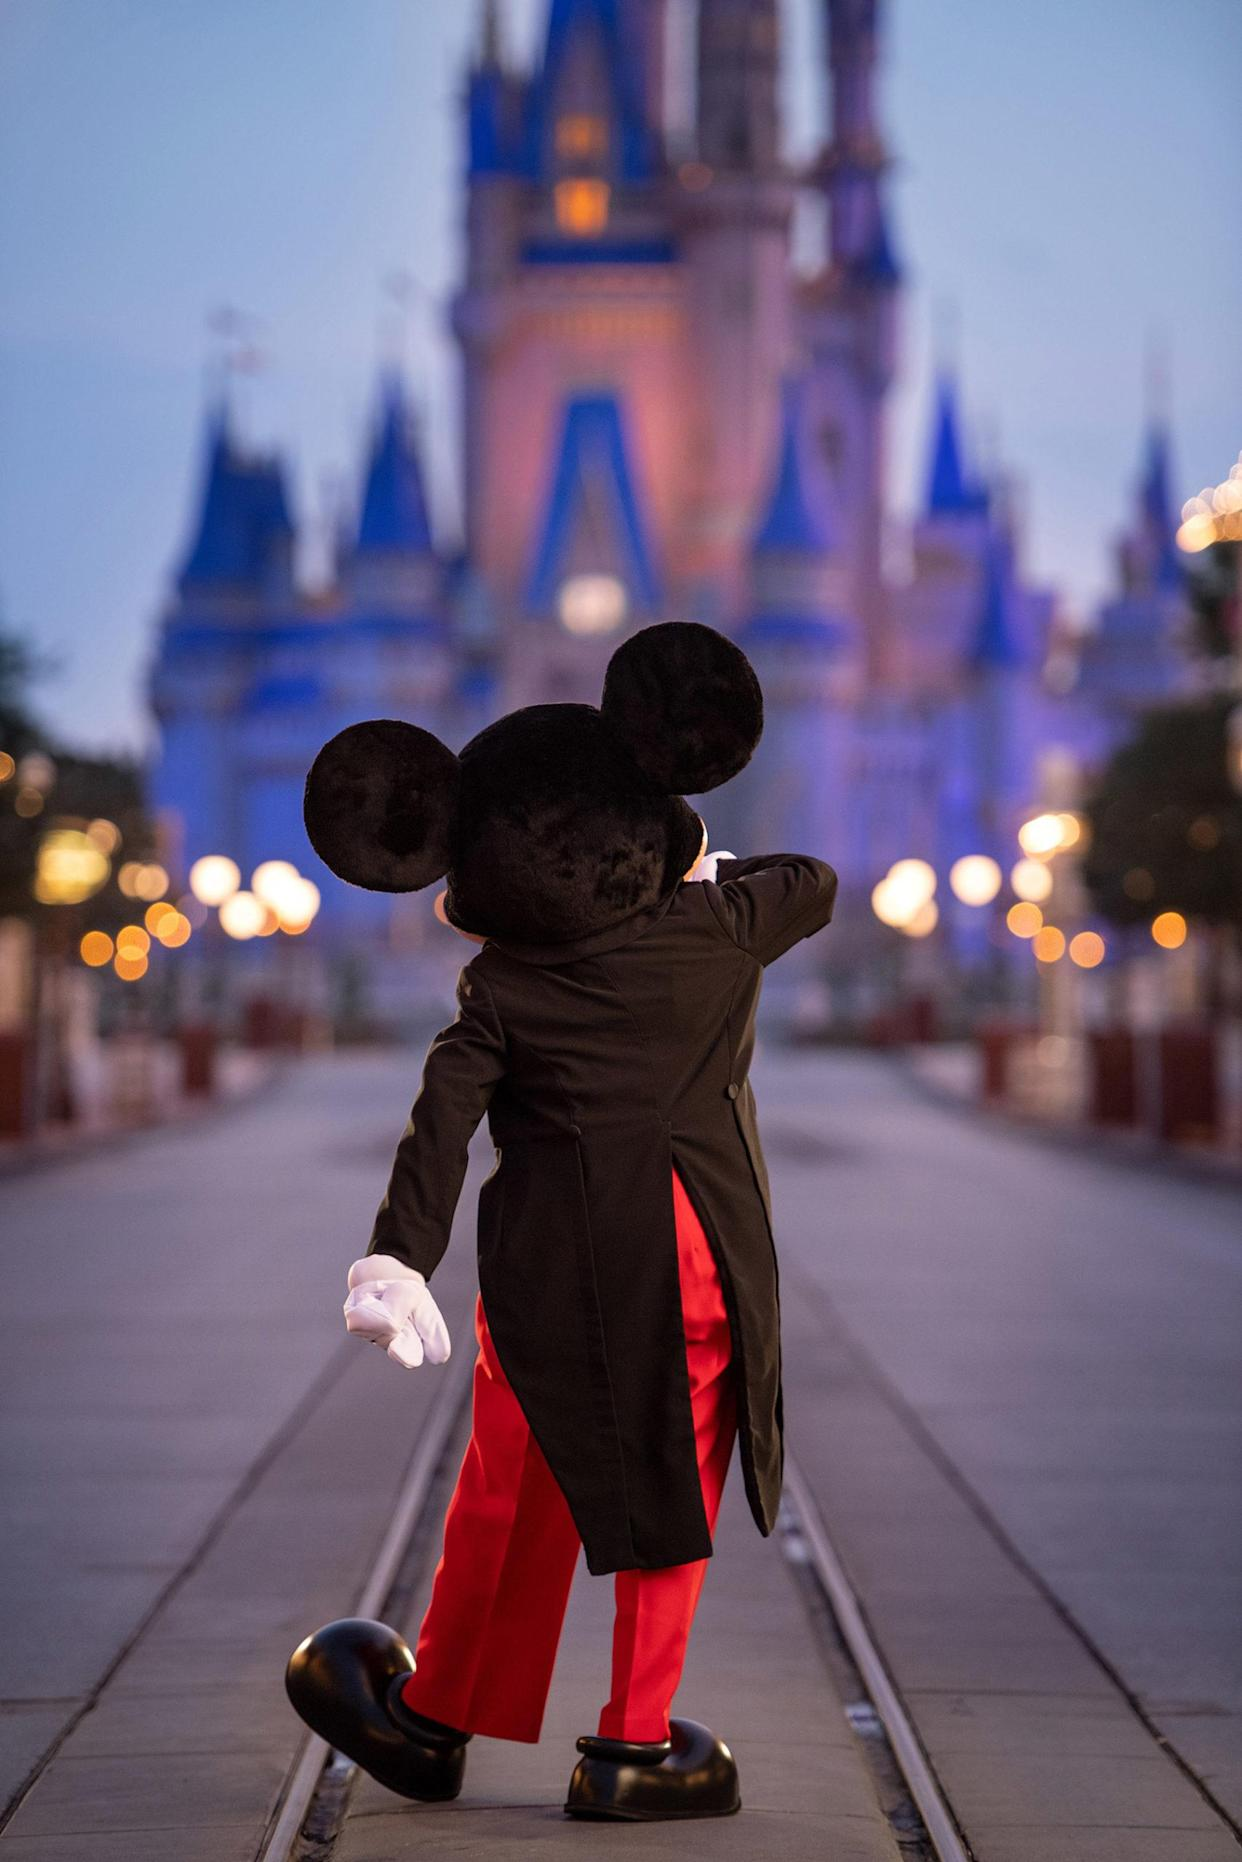 Disney World in Orlando, Fla., relaxed its face mask rules in specific outdoor areas of the park. (Photo: Kent Phillips/Walt Disney World Resort via Getty Images)